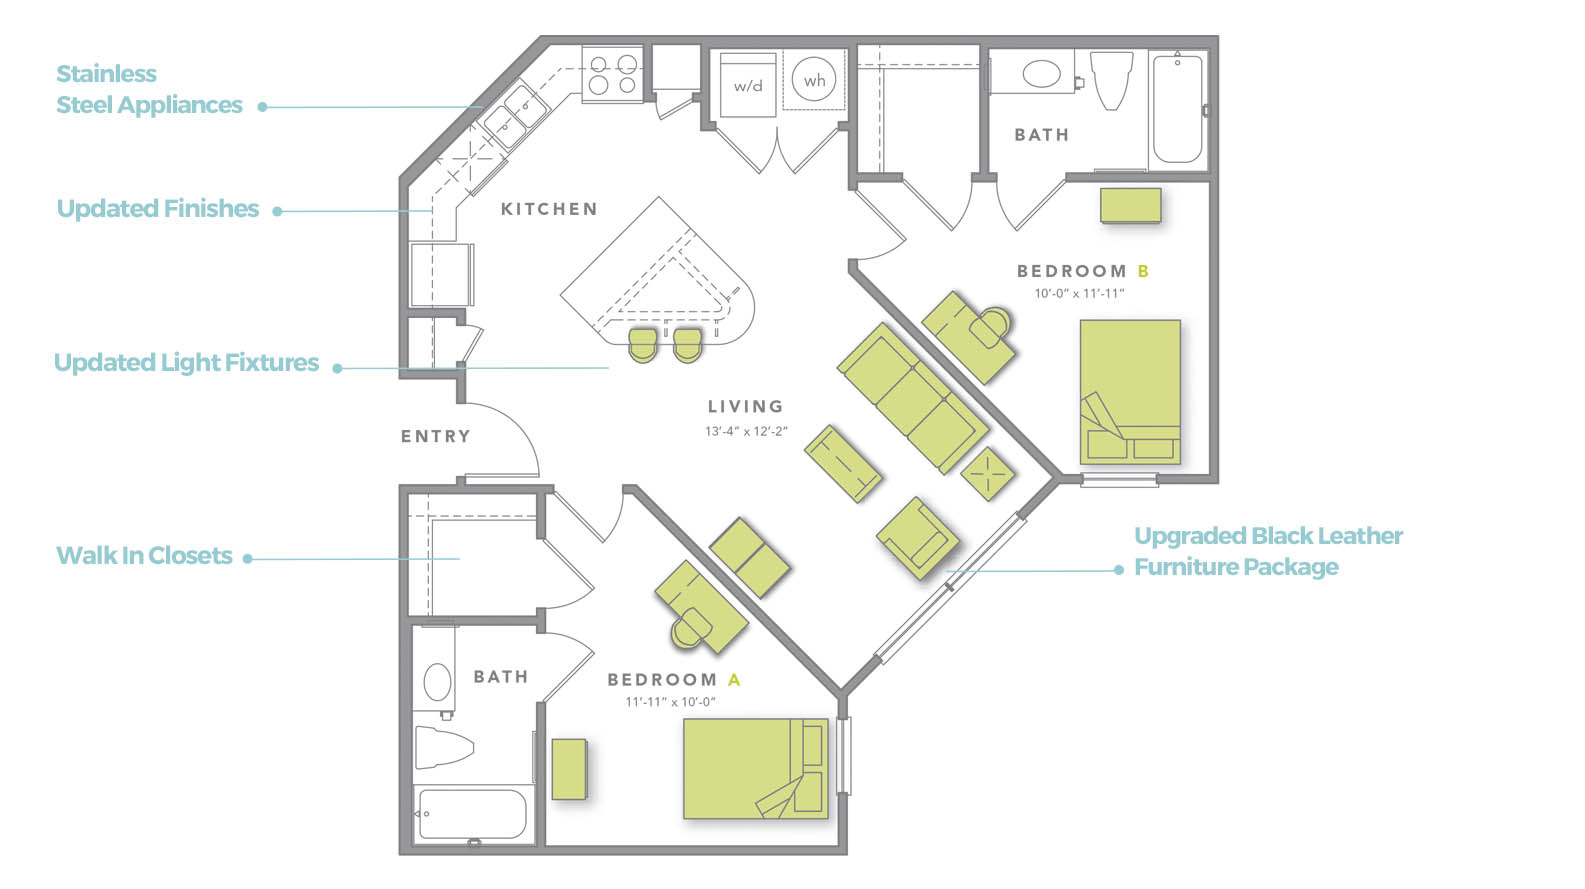 Detailed View of The B2 Premium Floor Plan